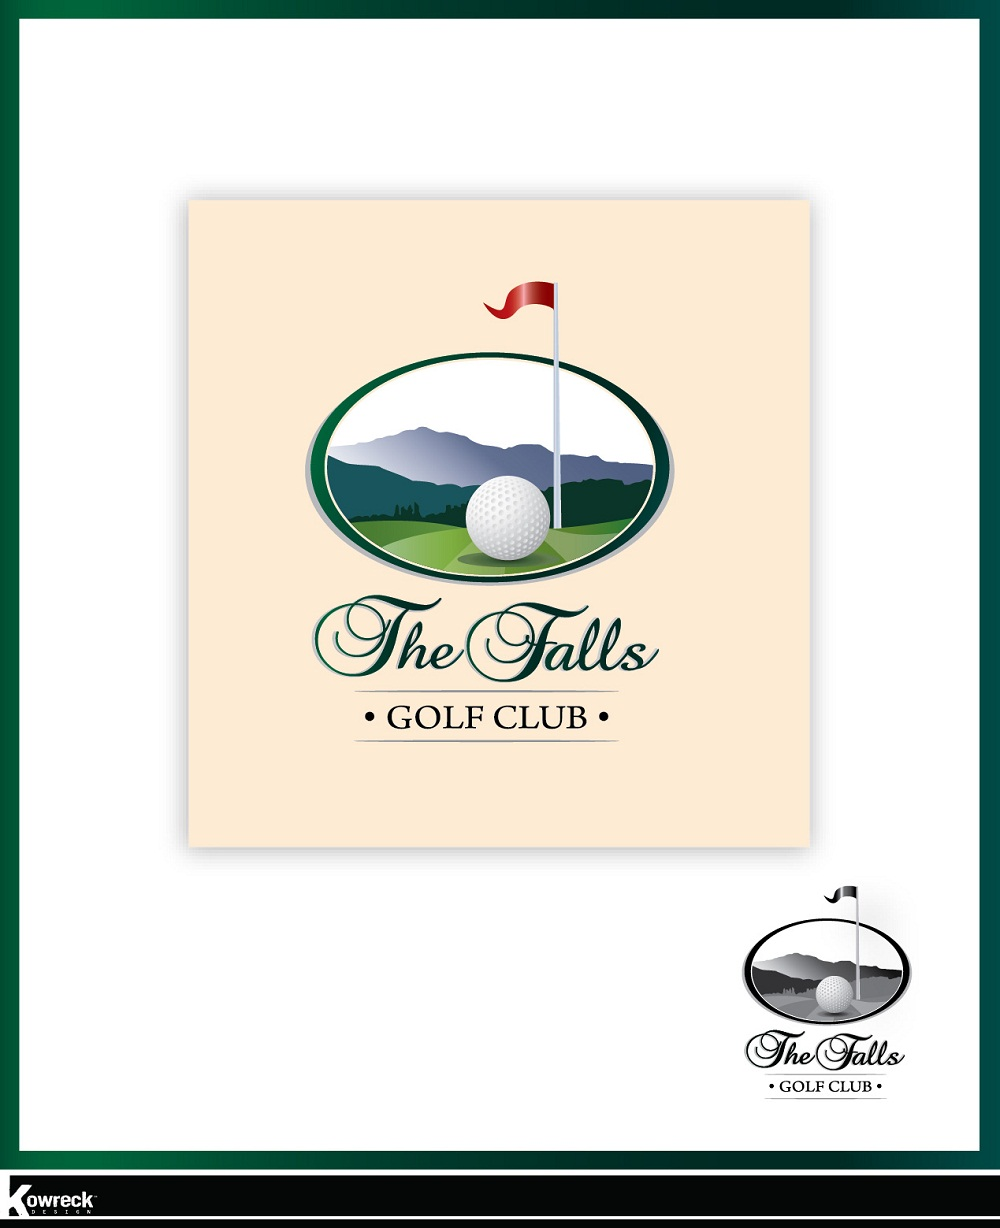 Logo Design by kowreck - Entry No. 9 in the Logo Design Contest The Falls Golf Club Logo Design.